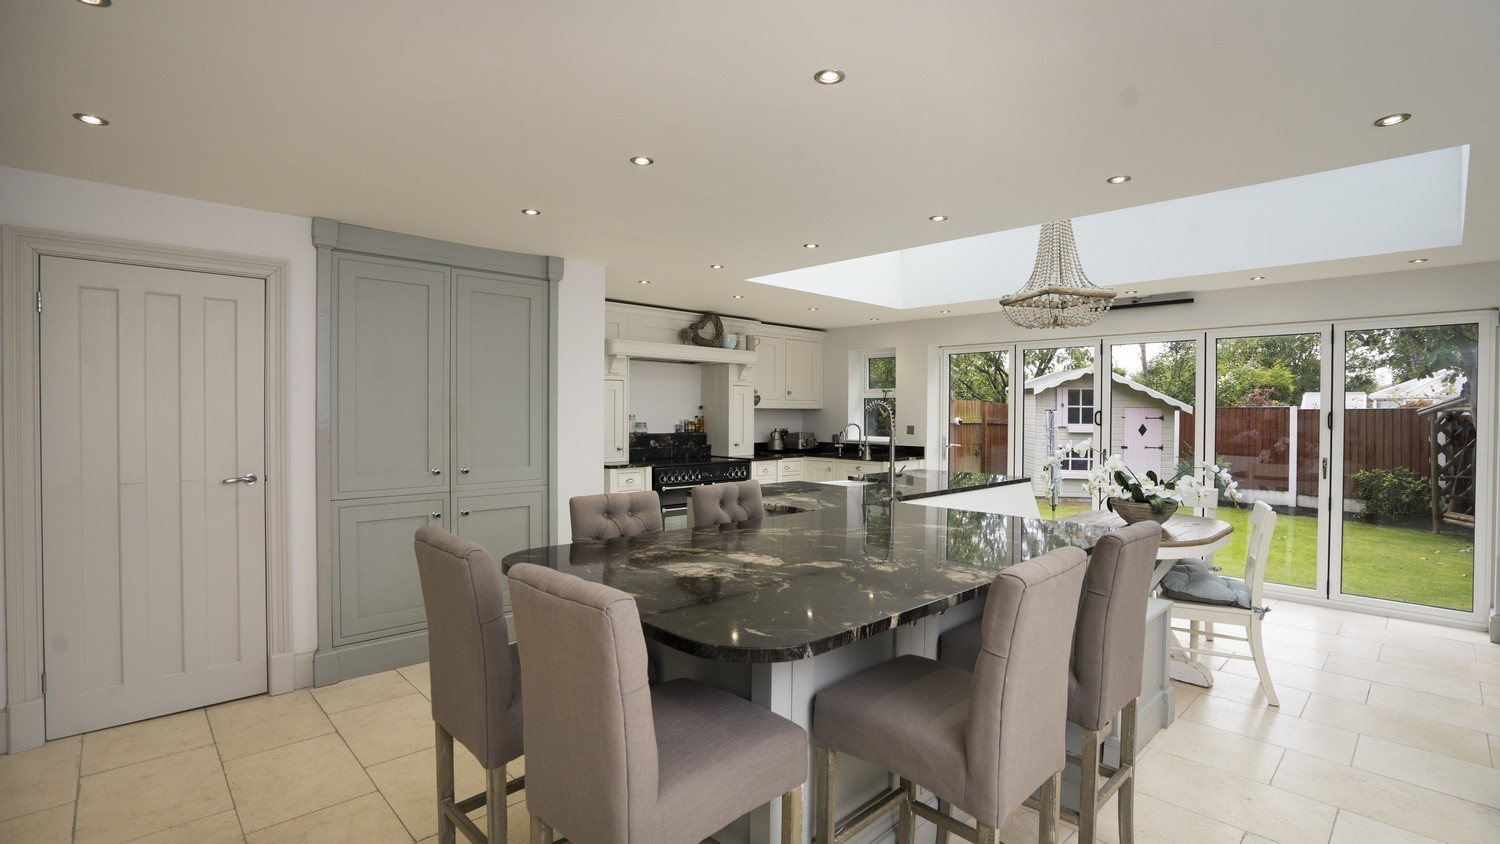 Full overview of this stunning open plan kitchen with roof lantern and bi-folding doors. This kitchen maximises on light, seating, space and all the modern appliance.